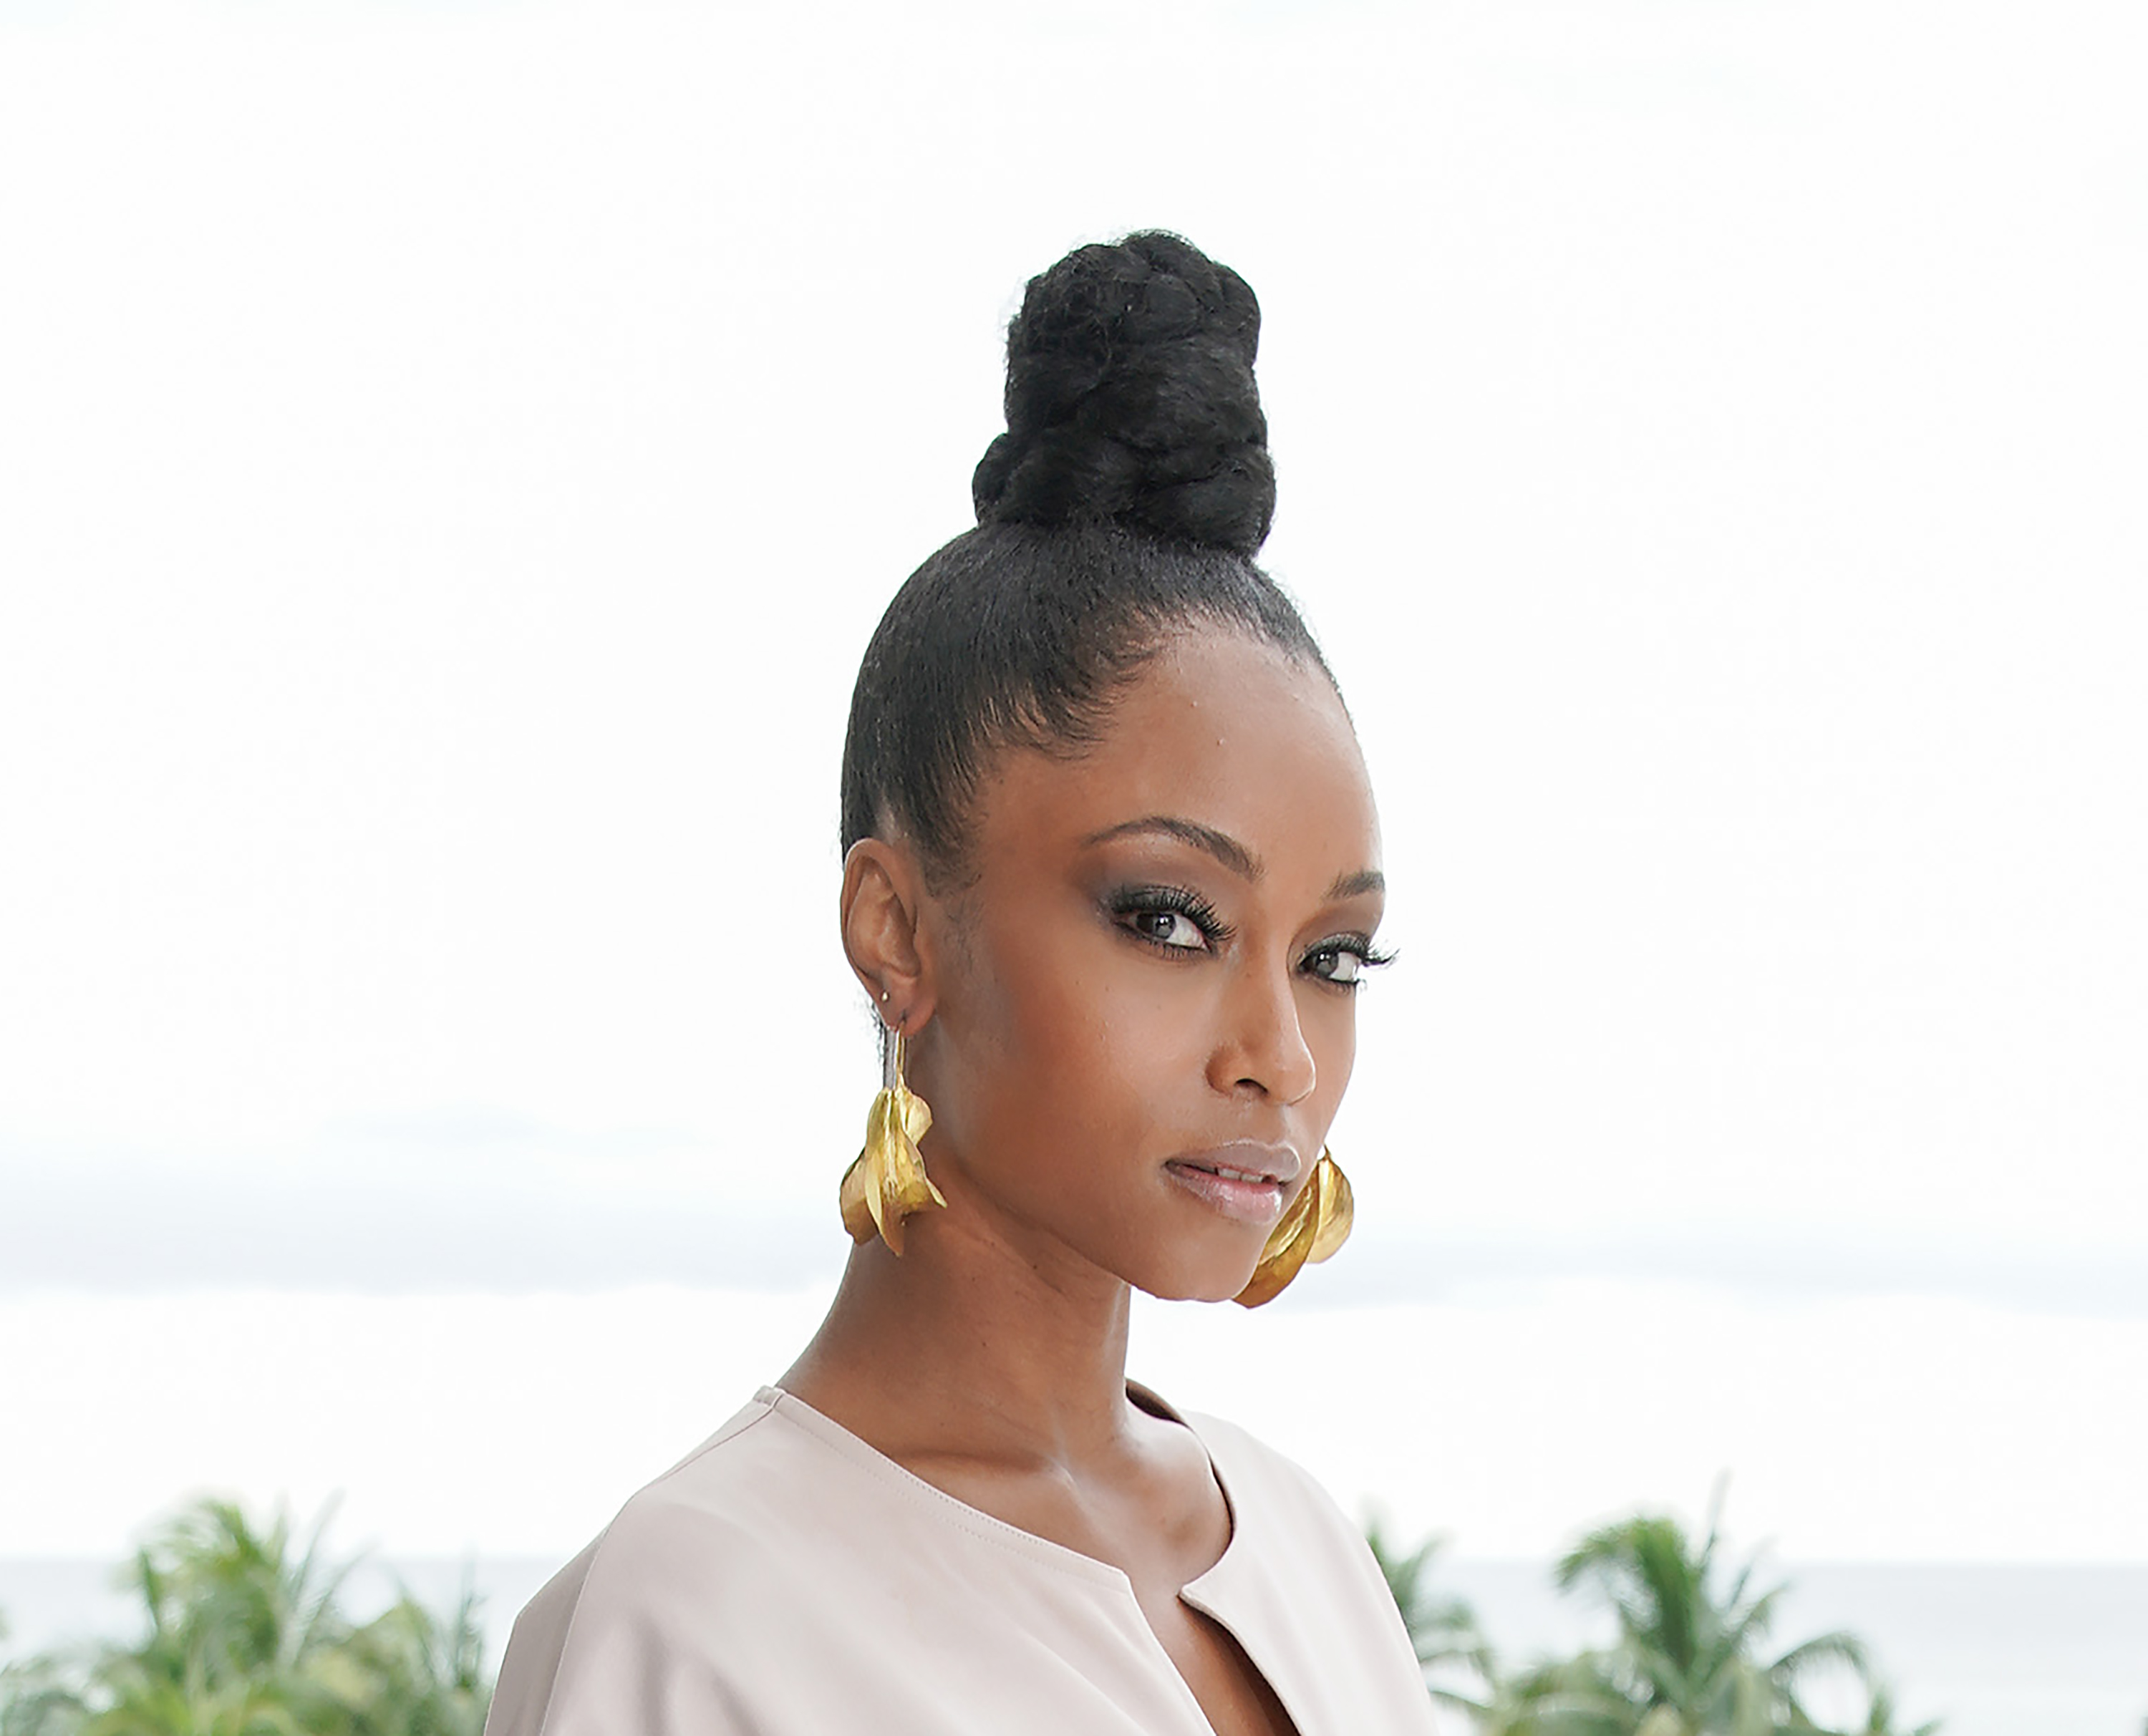 Yaya DaCosta To Headline 'Our Kind Of People' Fox Drama Series Following 'Chicago Med' Exit